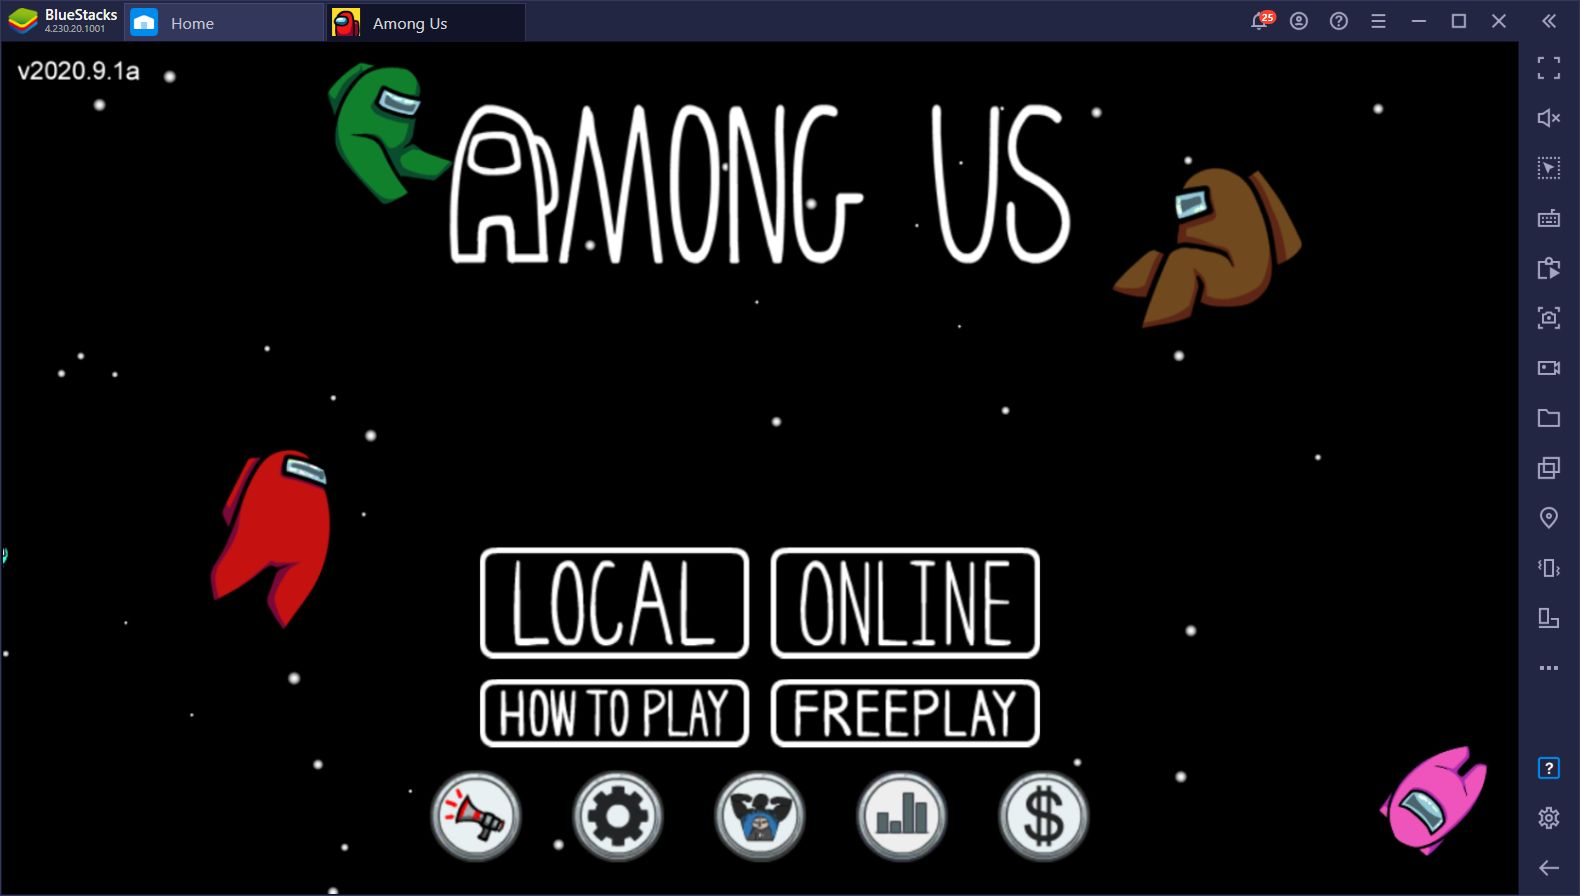 Mac users, there's still a way you can play 'Among Us' if you don't want to play the mobile version. Here's you guide to install the game.